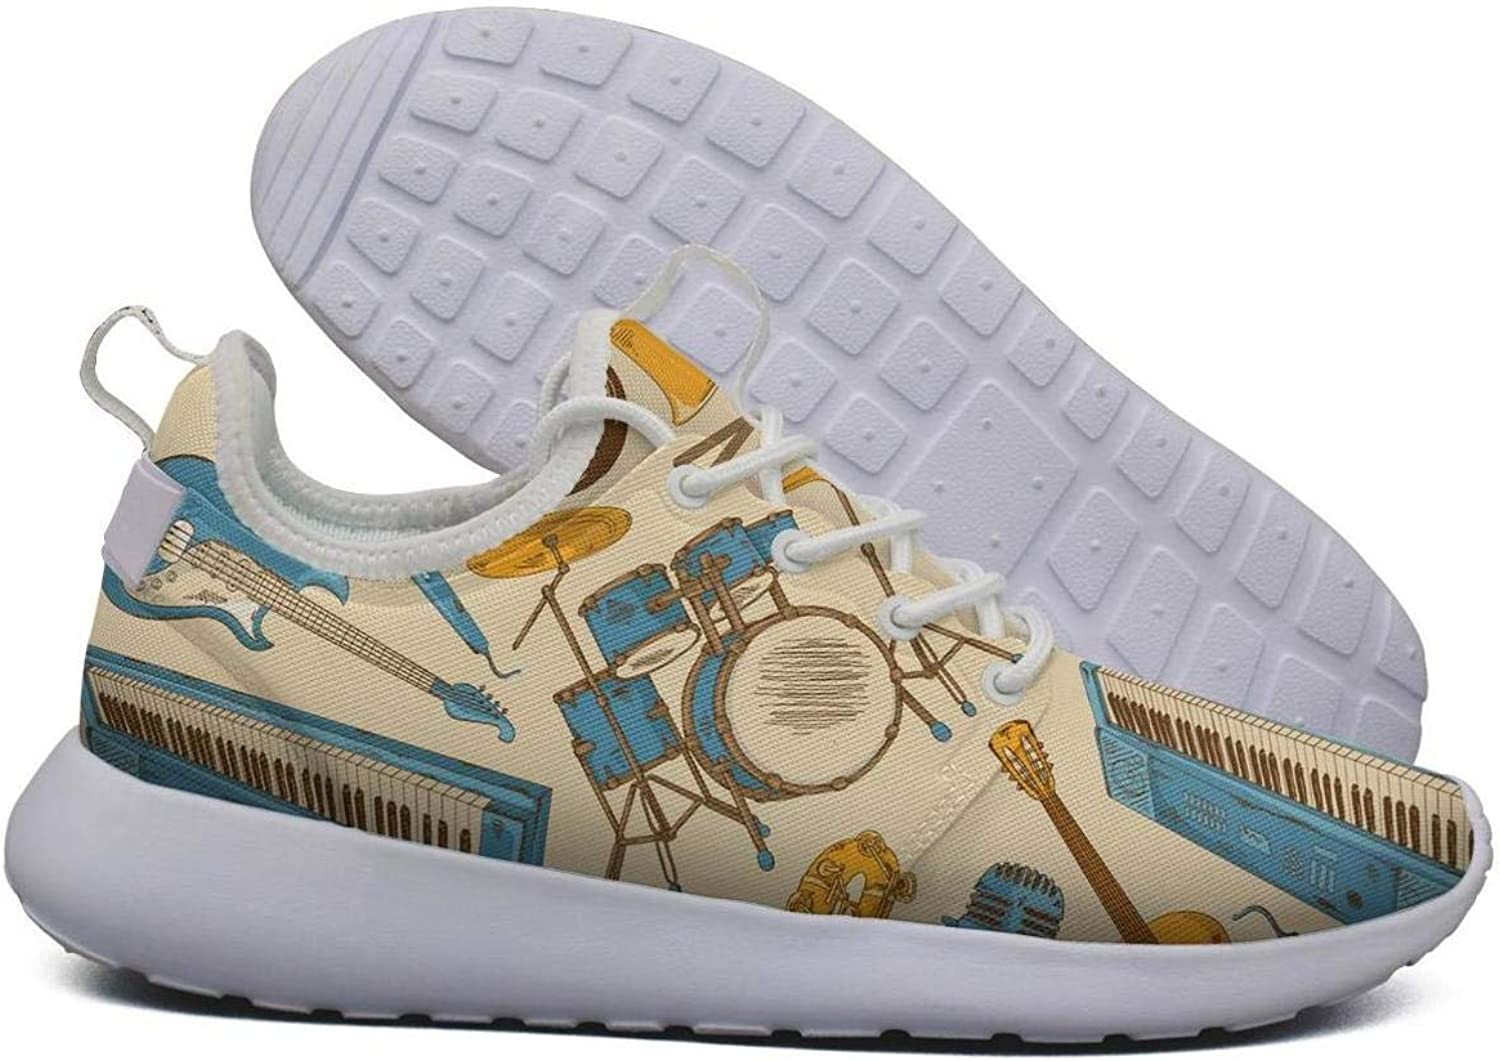 Hoohle Sports Womens colorful Musical Instruments warmoth Guitar Flex Mesh Roshe 2 Lightweight Cute Cross-Trainer shoes